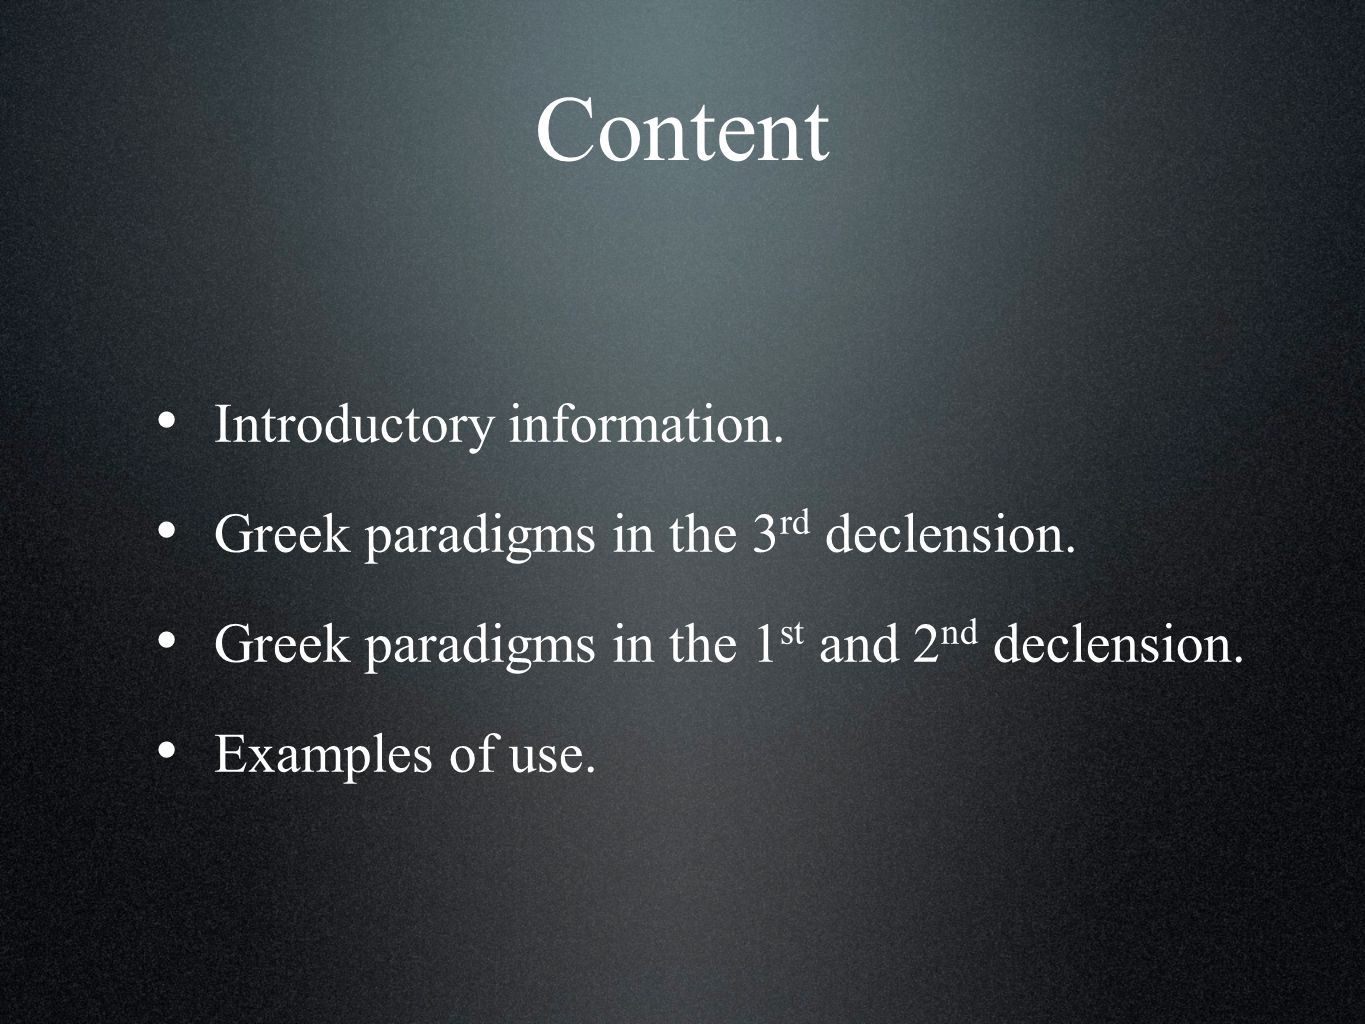 Introductory information. Greek paradigms in the 3 rd declension.